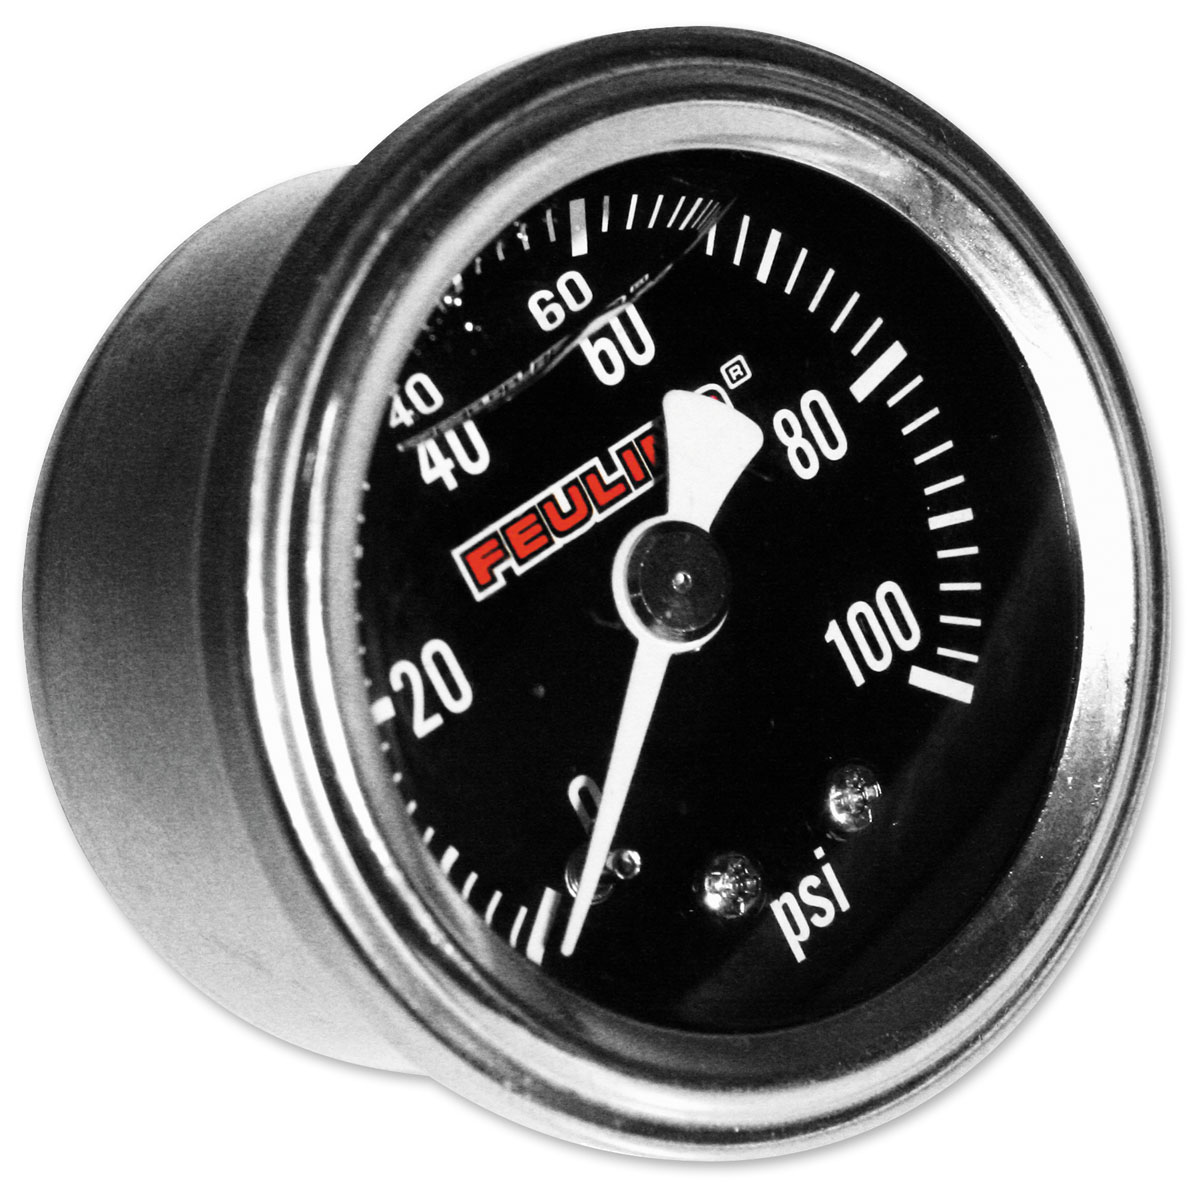 Feuling Liquid Filled Pressure Gauge